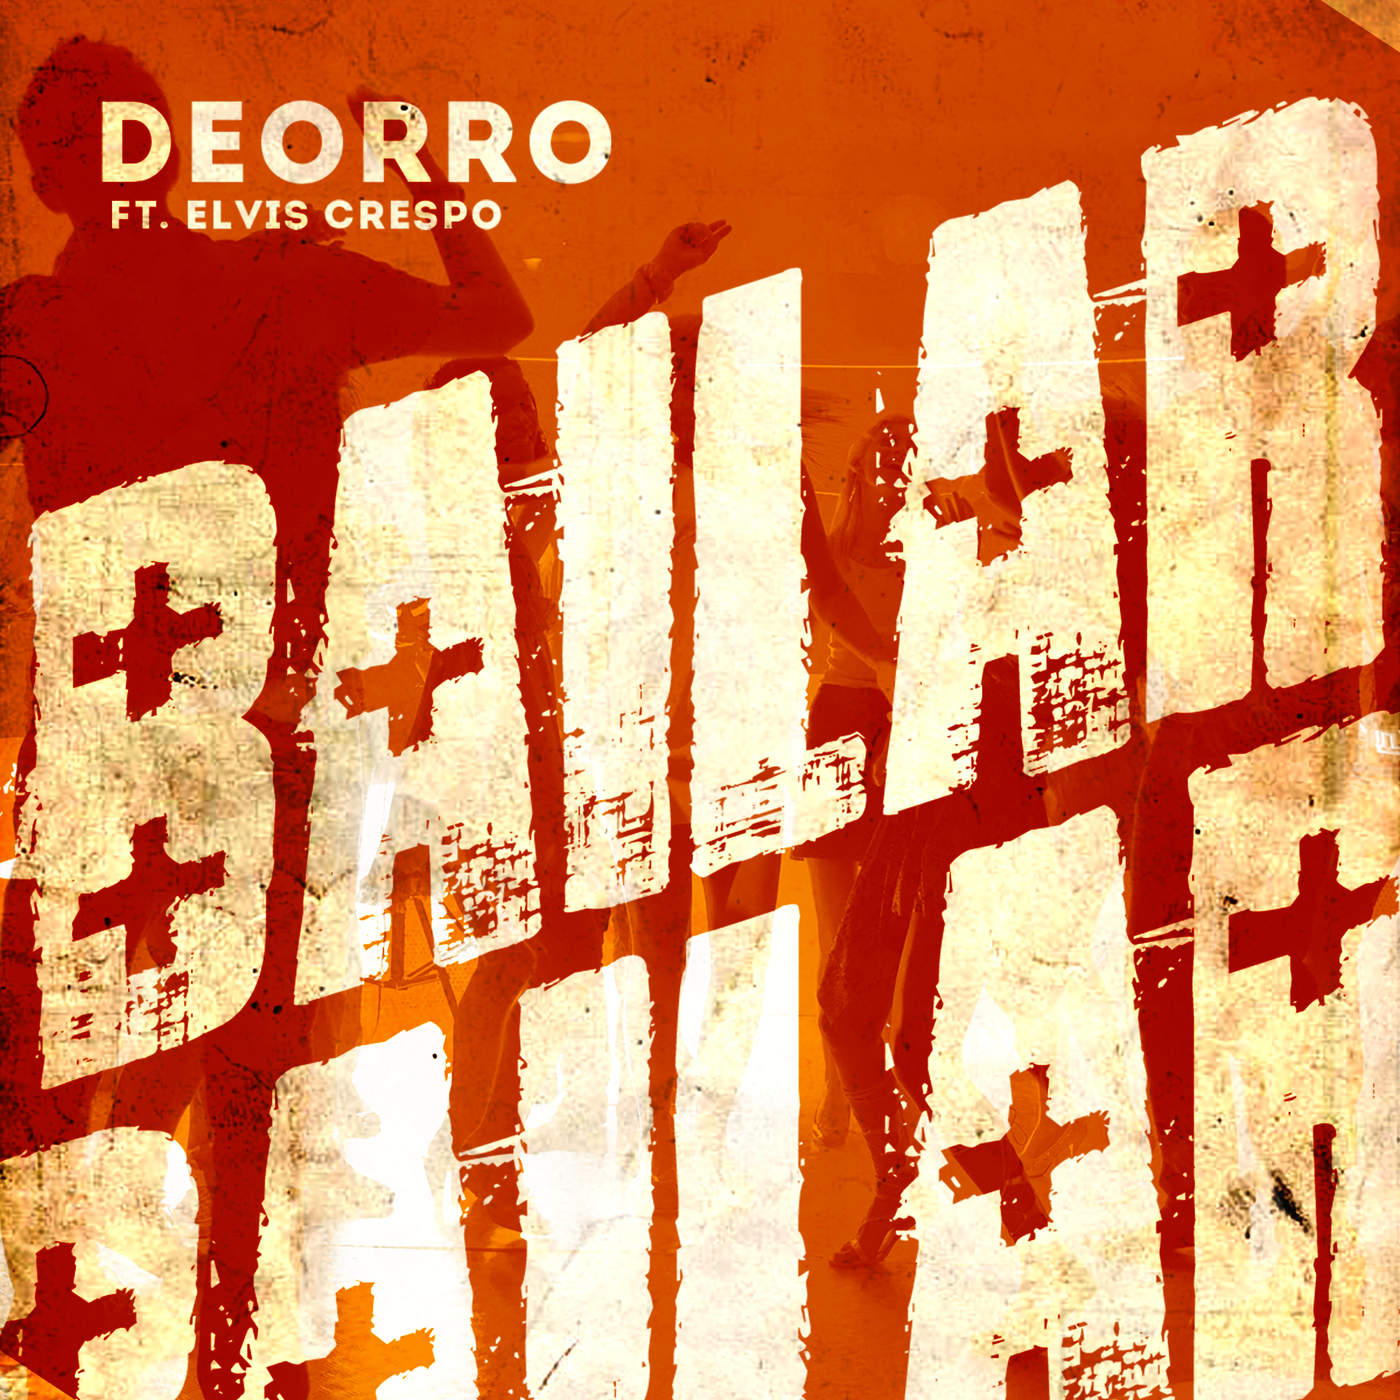 Download deorro feat. Elvis crespo bailar (original mix) mp3.